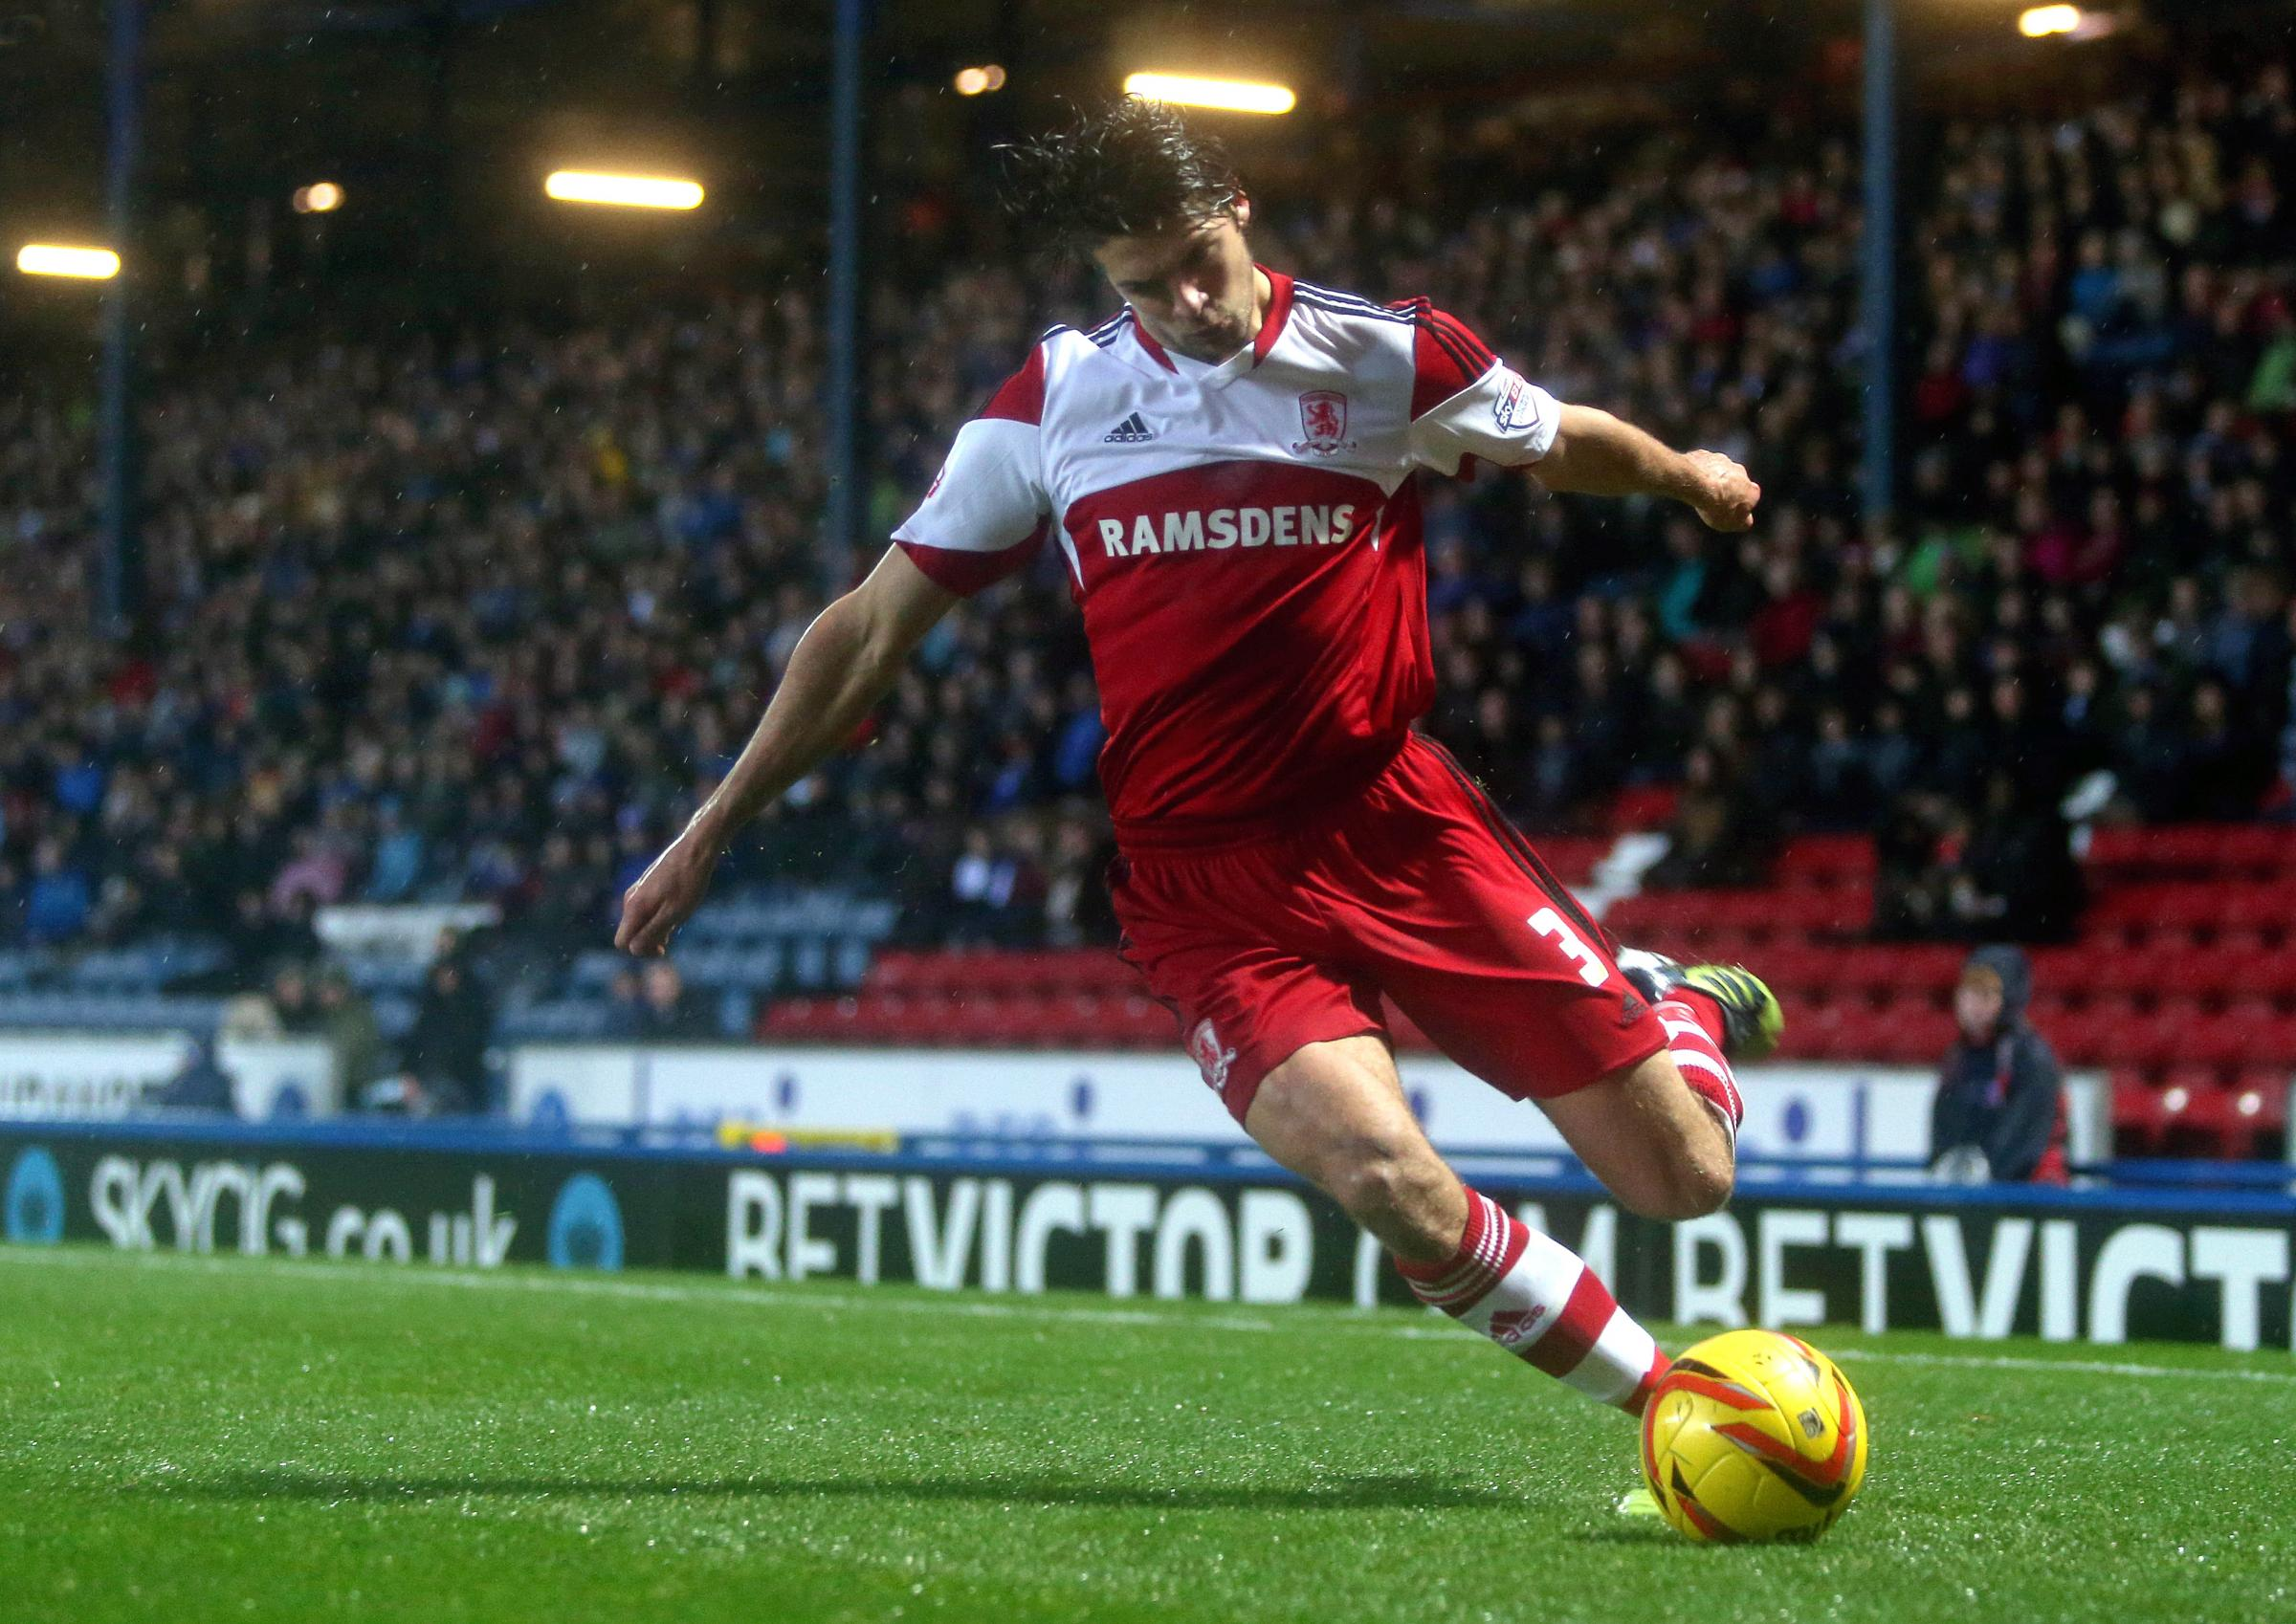 IMPROVEMENT: George Friend again impressed at the weekend